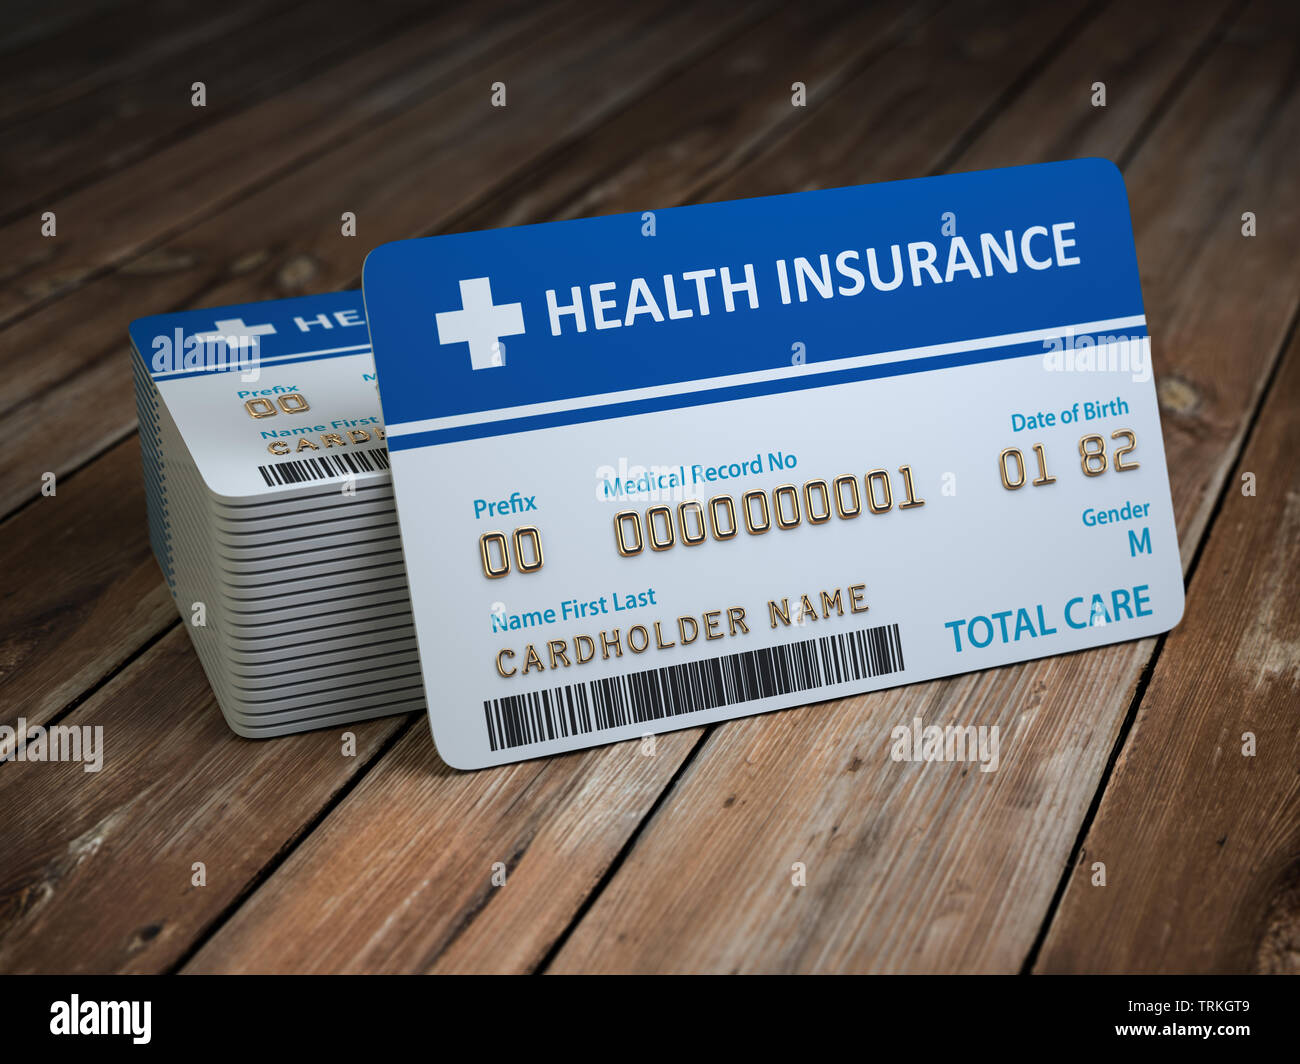 Health care medical Insurance card on the wood background. 3d illustration - Stock Image